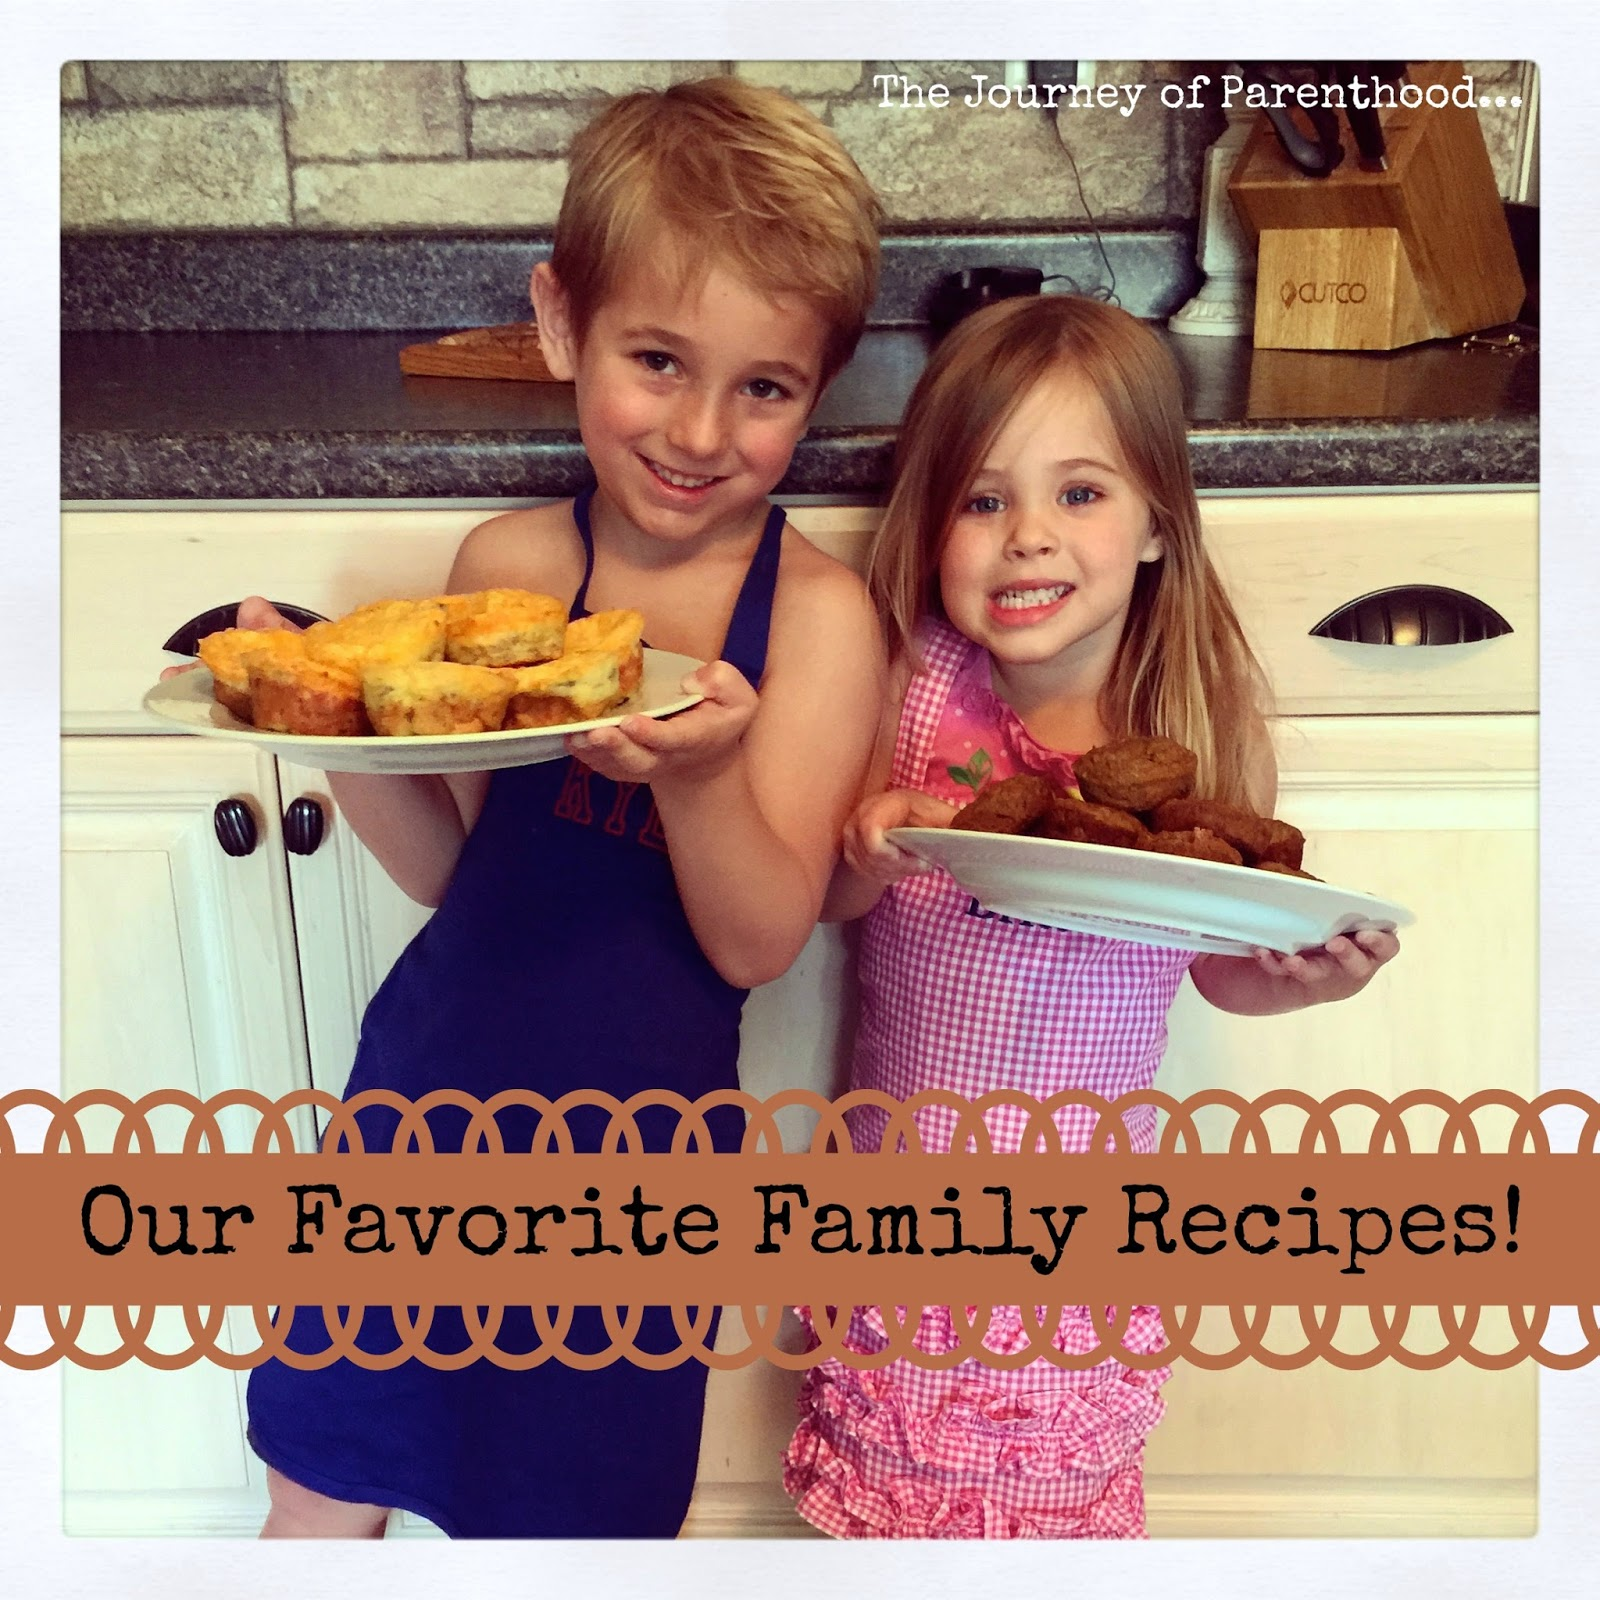 Our Favorite Recipes!